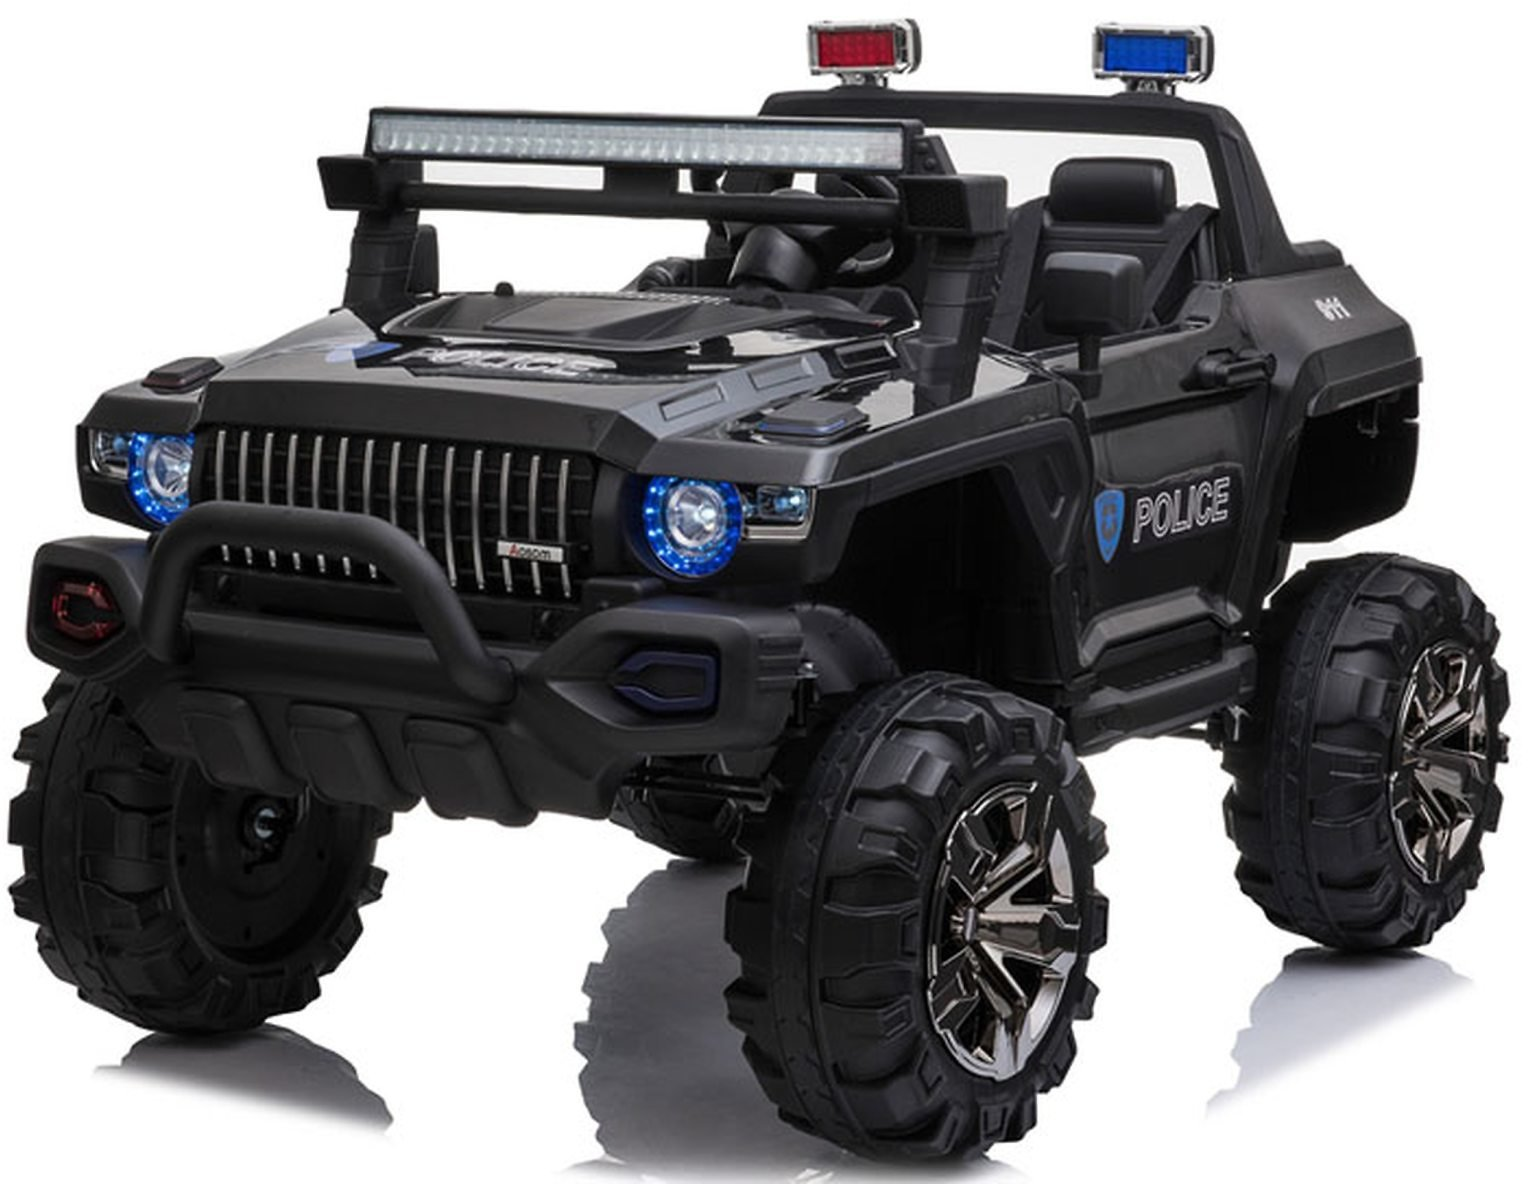 12V Kids 2-Seat SUV Truck with Remote Control